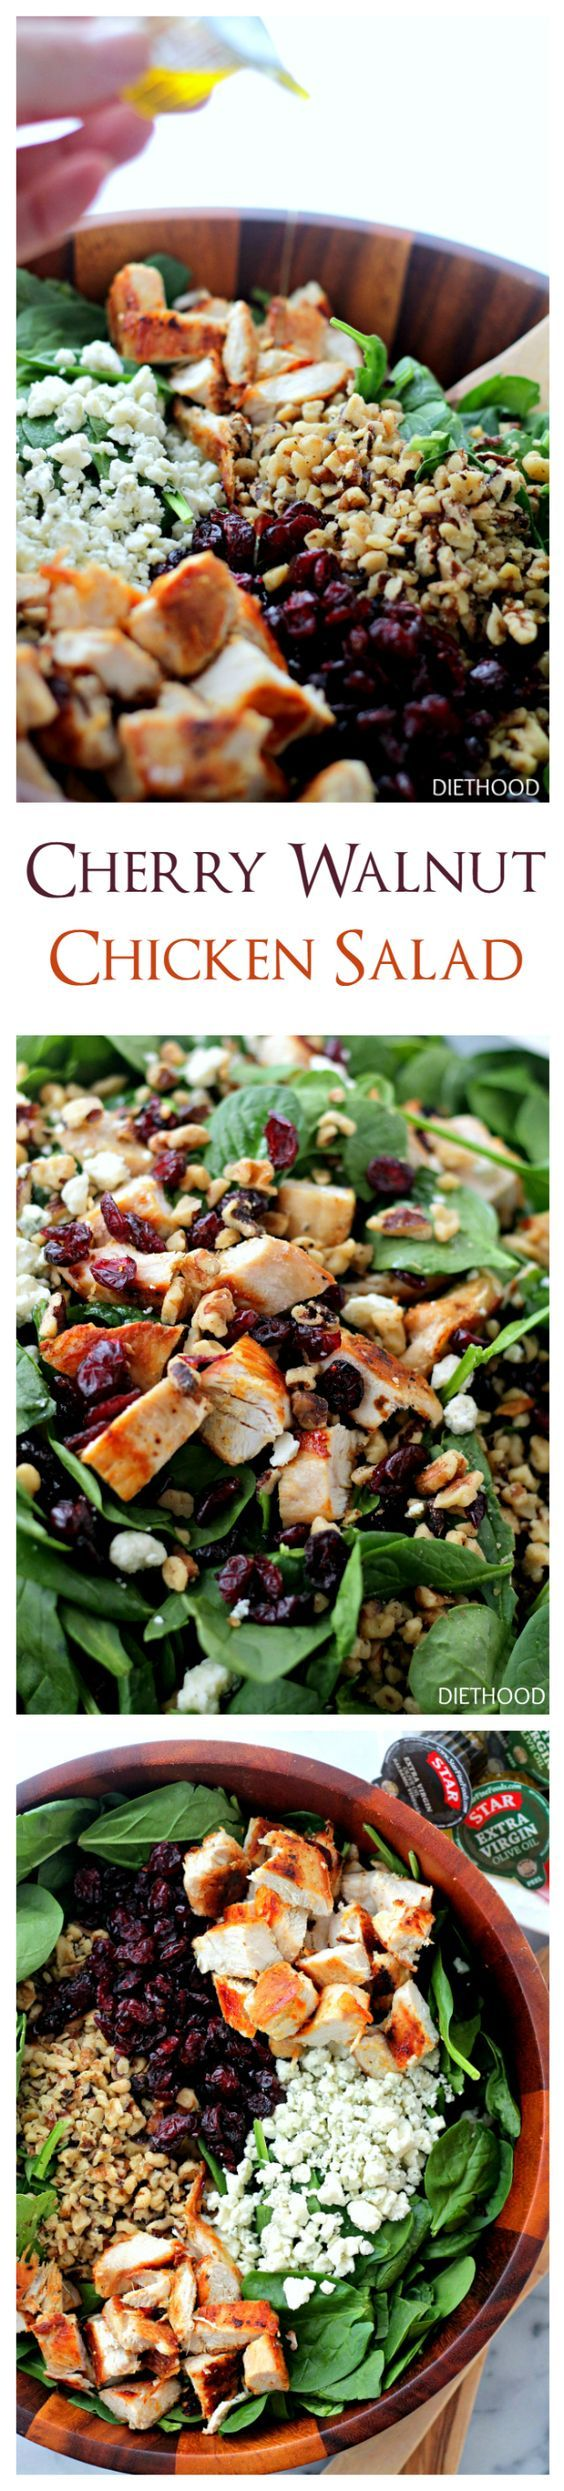 This Cherry Walnut Chicken Salad is AMAZING! You simply have to try it. One of my top 5 healthy salad recipes of all time!